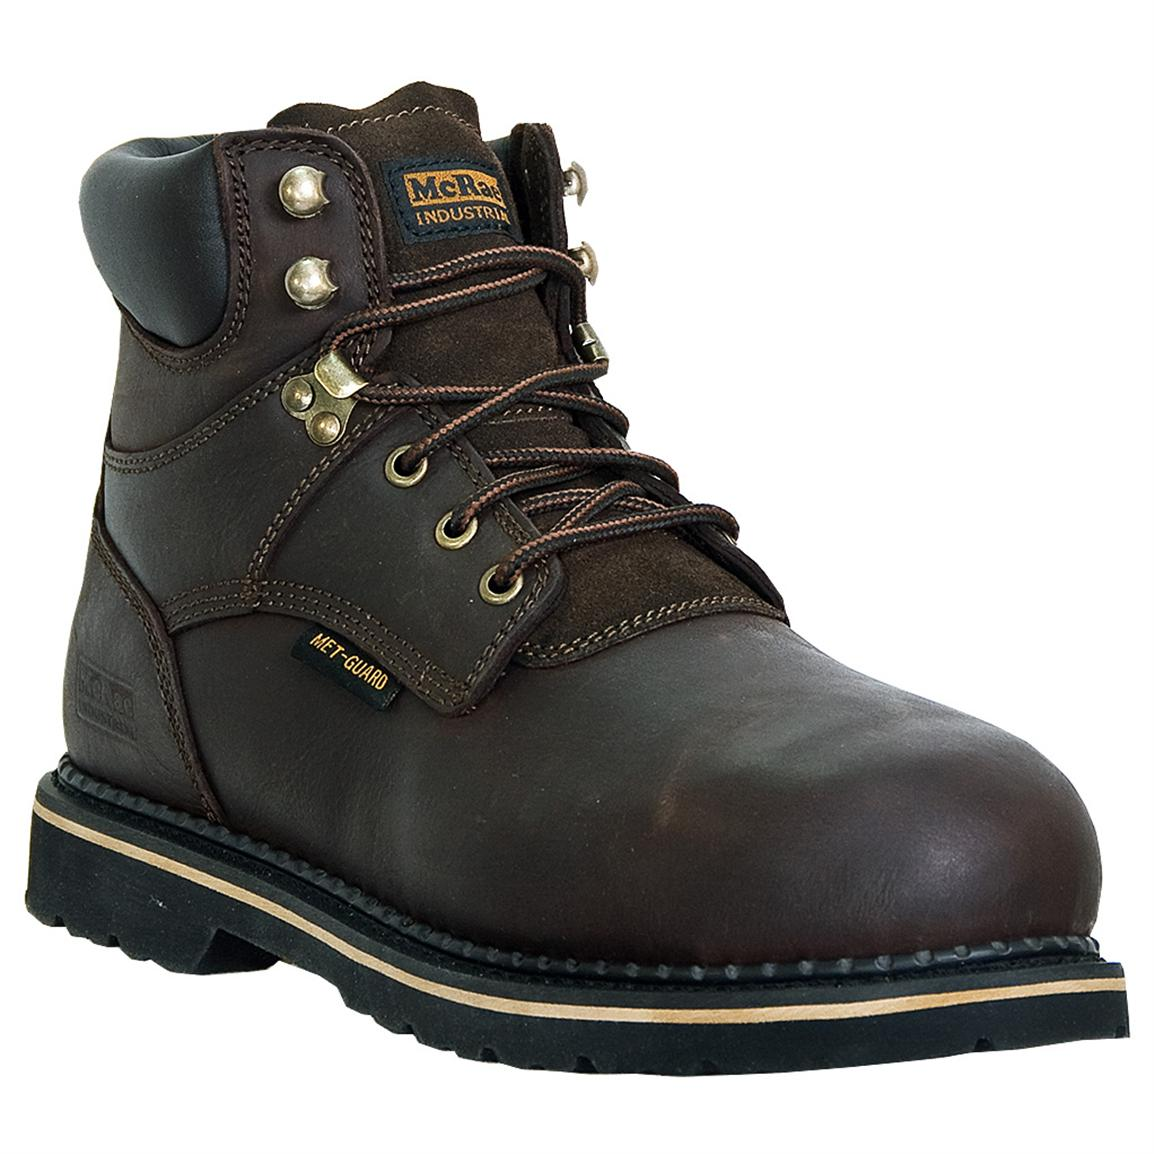 Men's McRae Industrial® Safety Toe Internal Met-guard Lace-up Work Boots